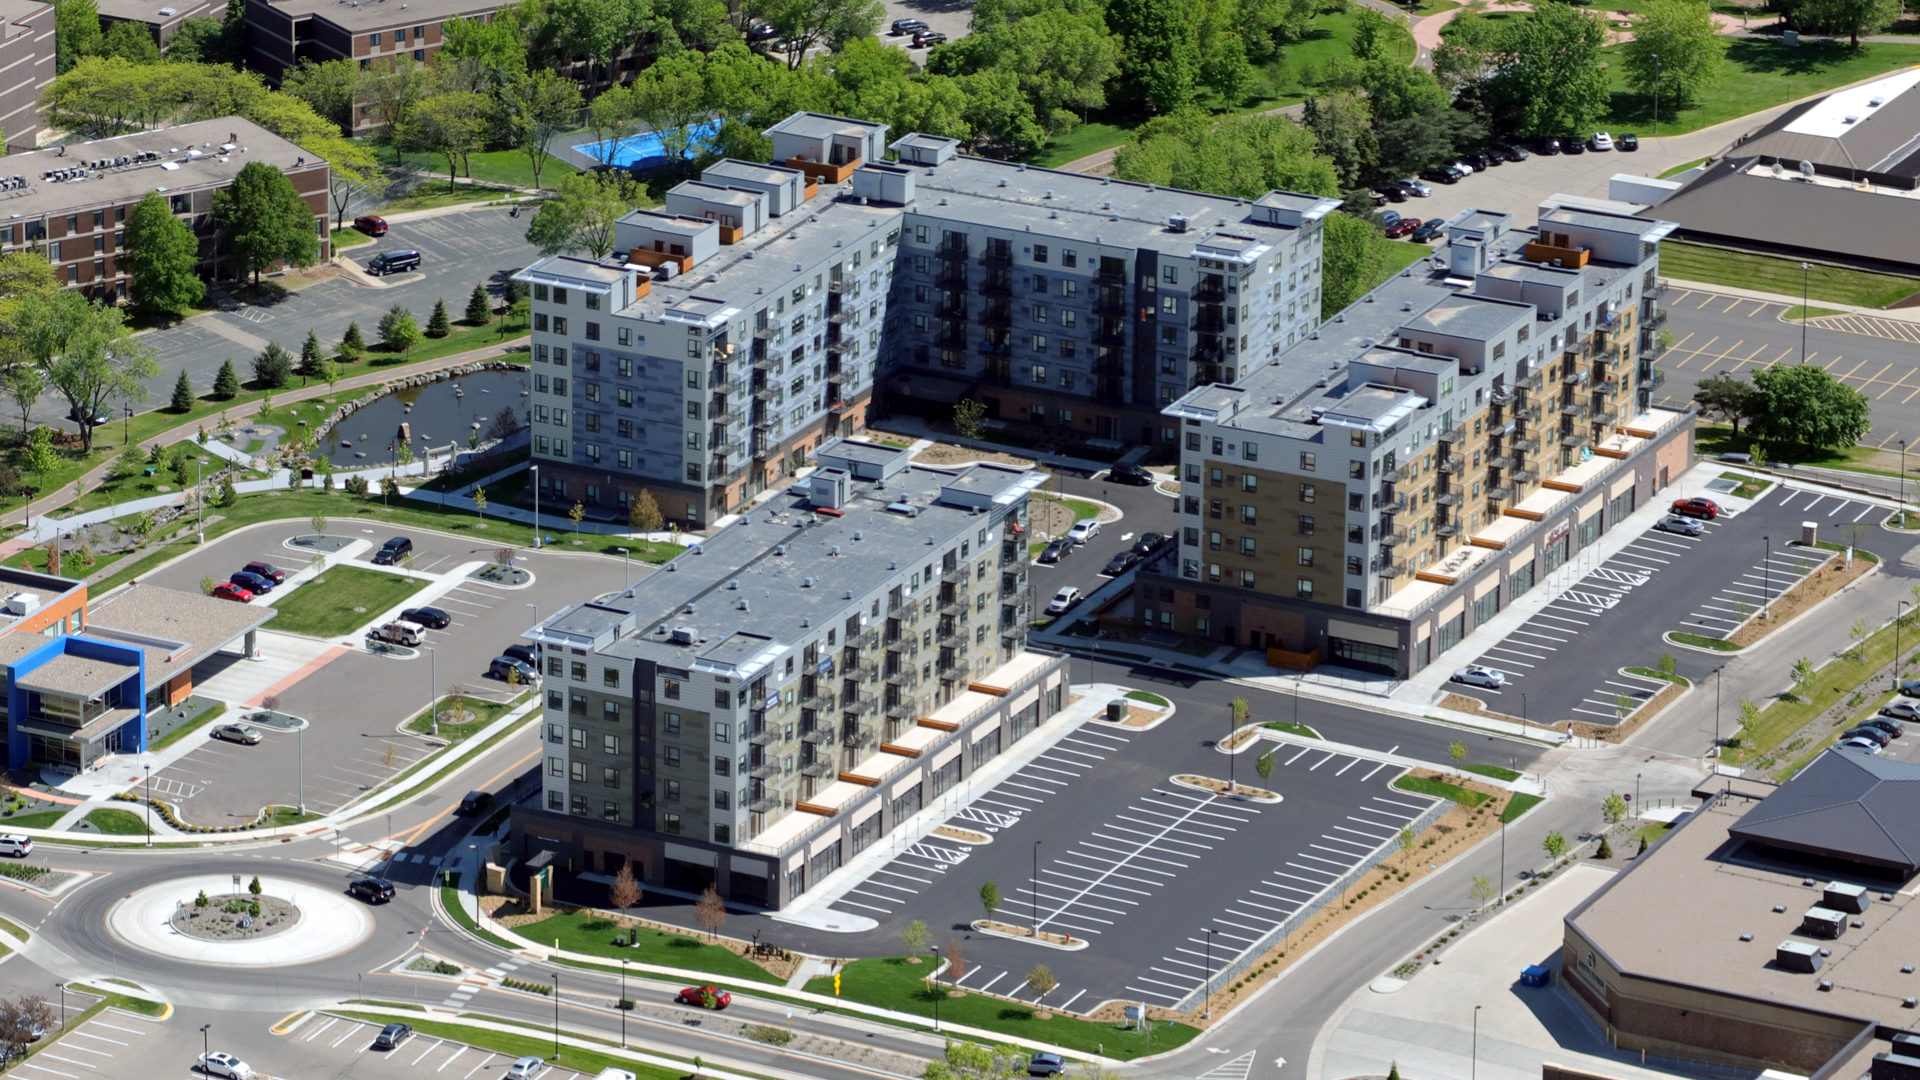 71 France Apartments Exterior Aerial View